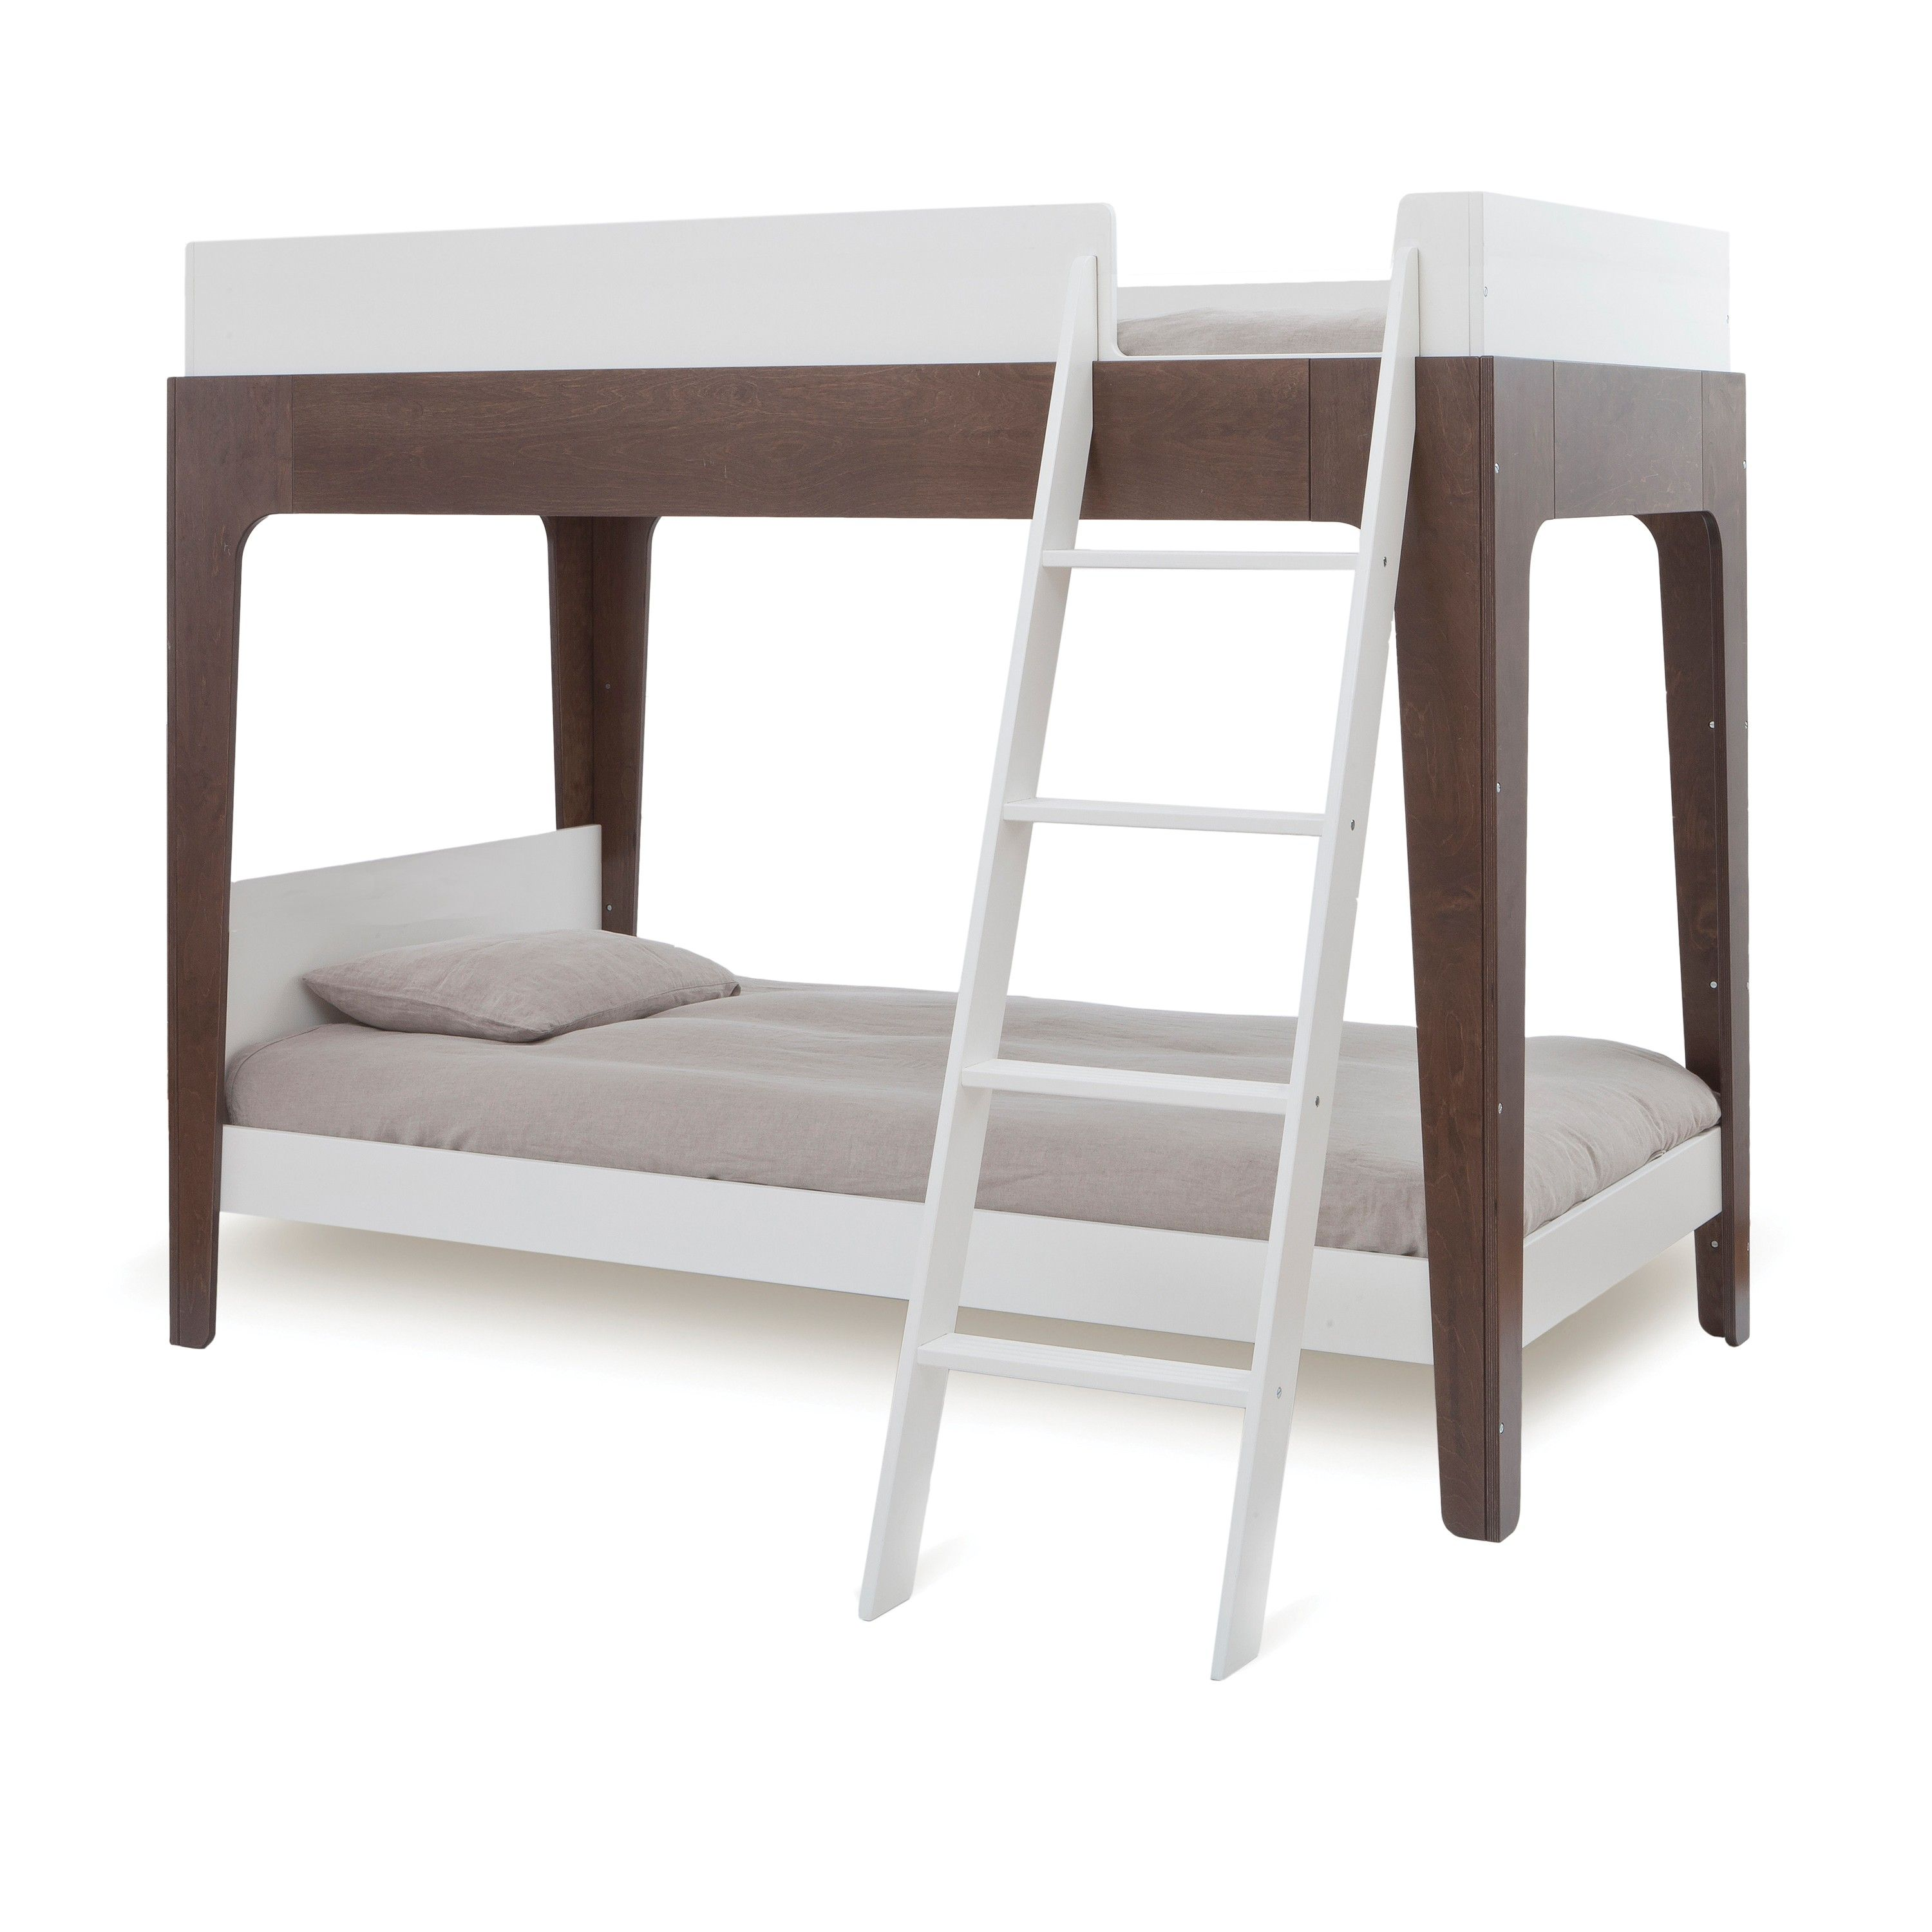 Oeuf Perch Bunk Bed Modern bunk beds, White bunk beds